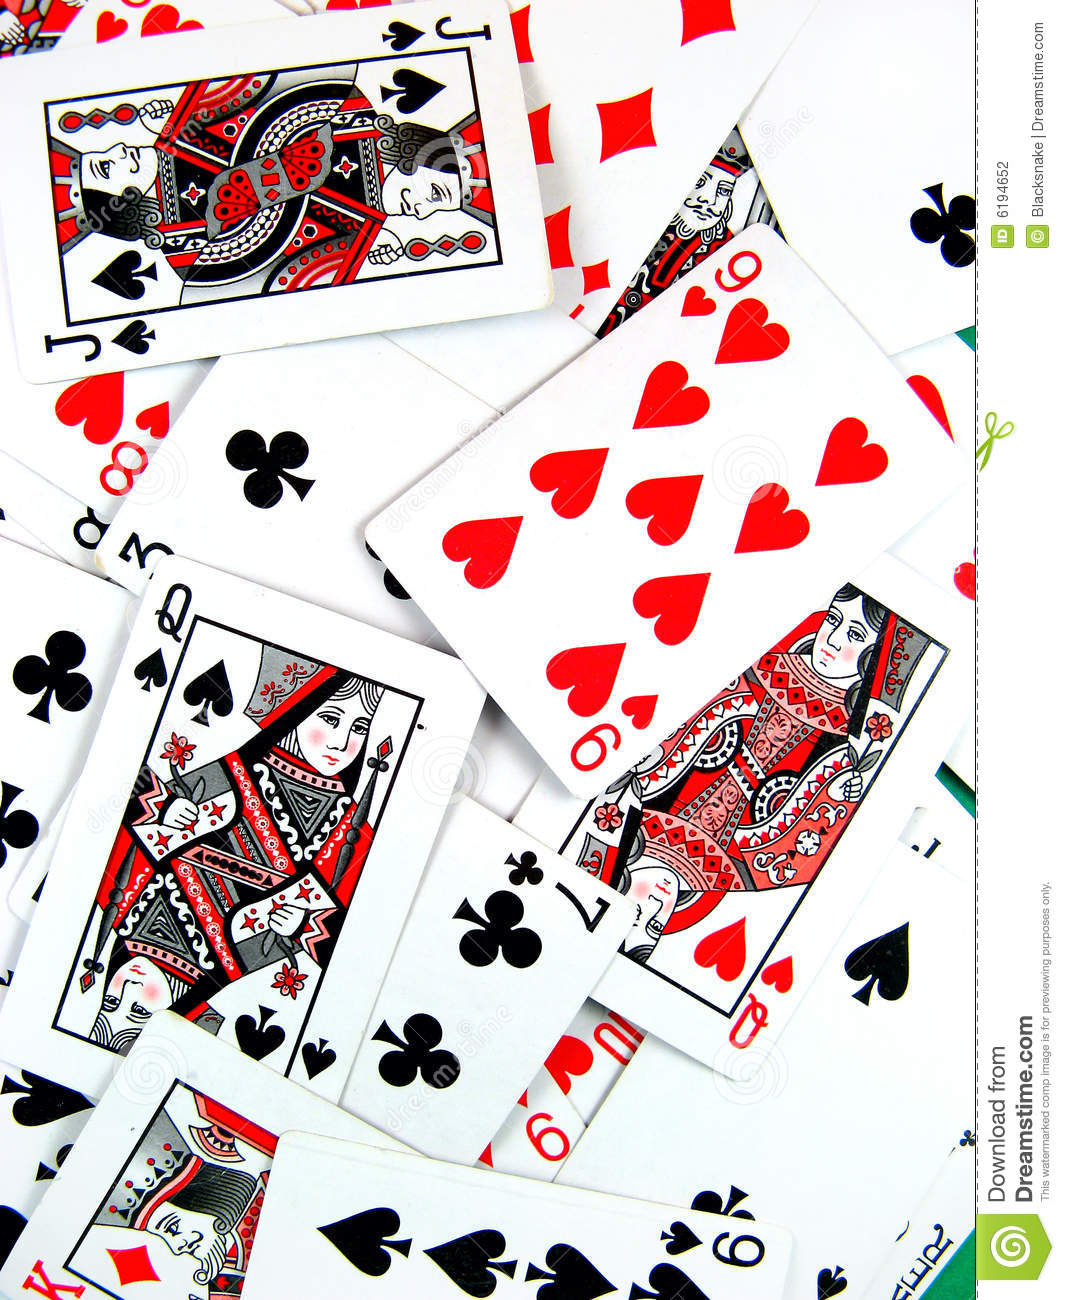 dream card poker free online